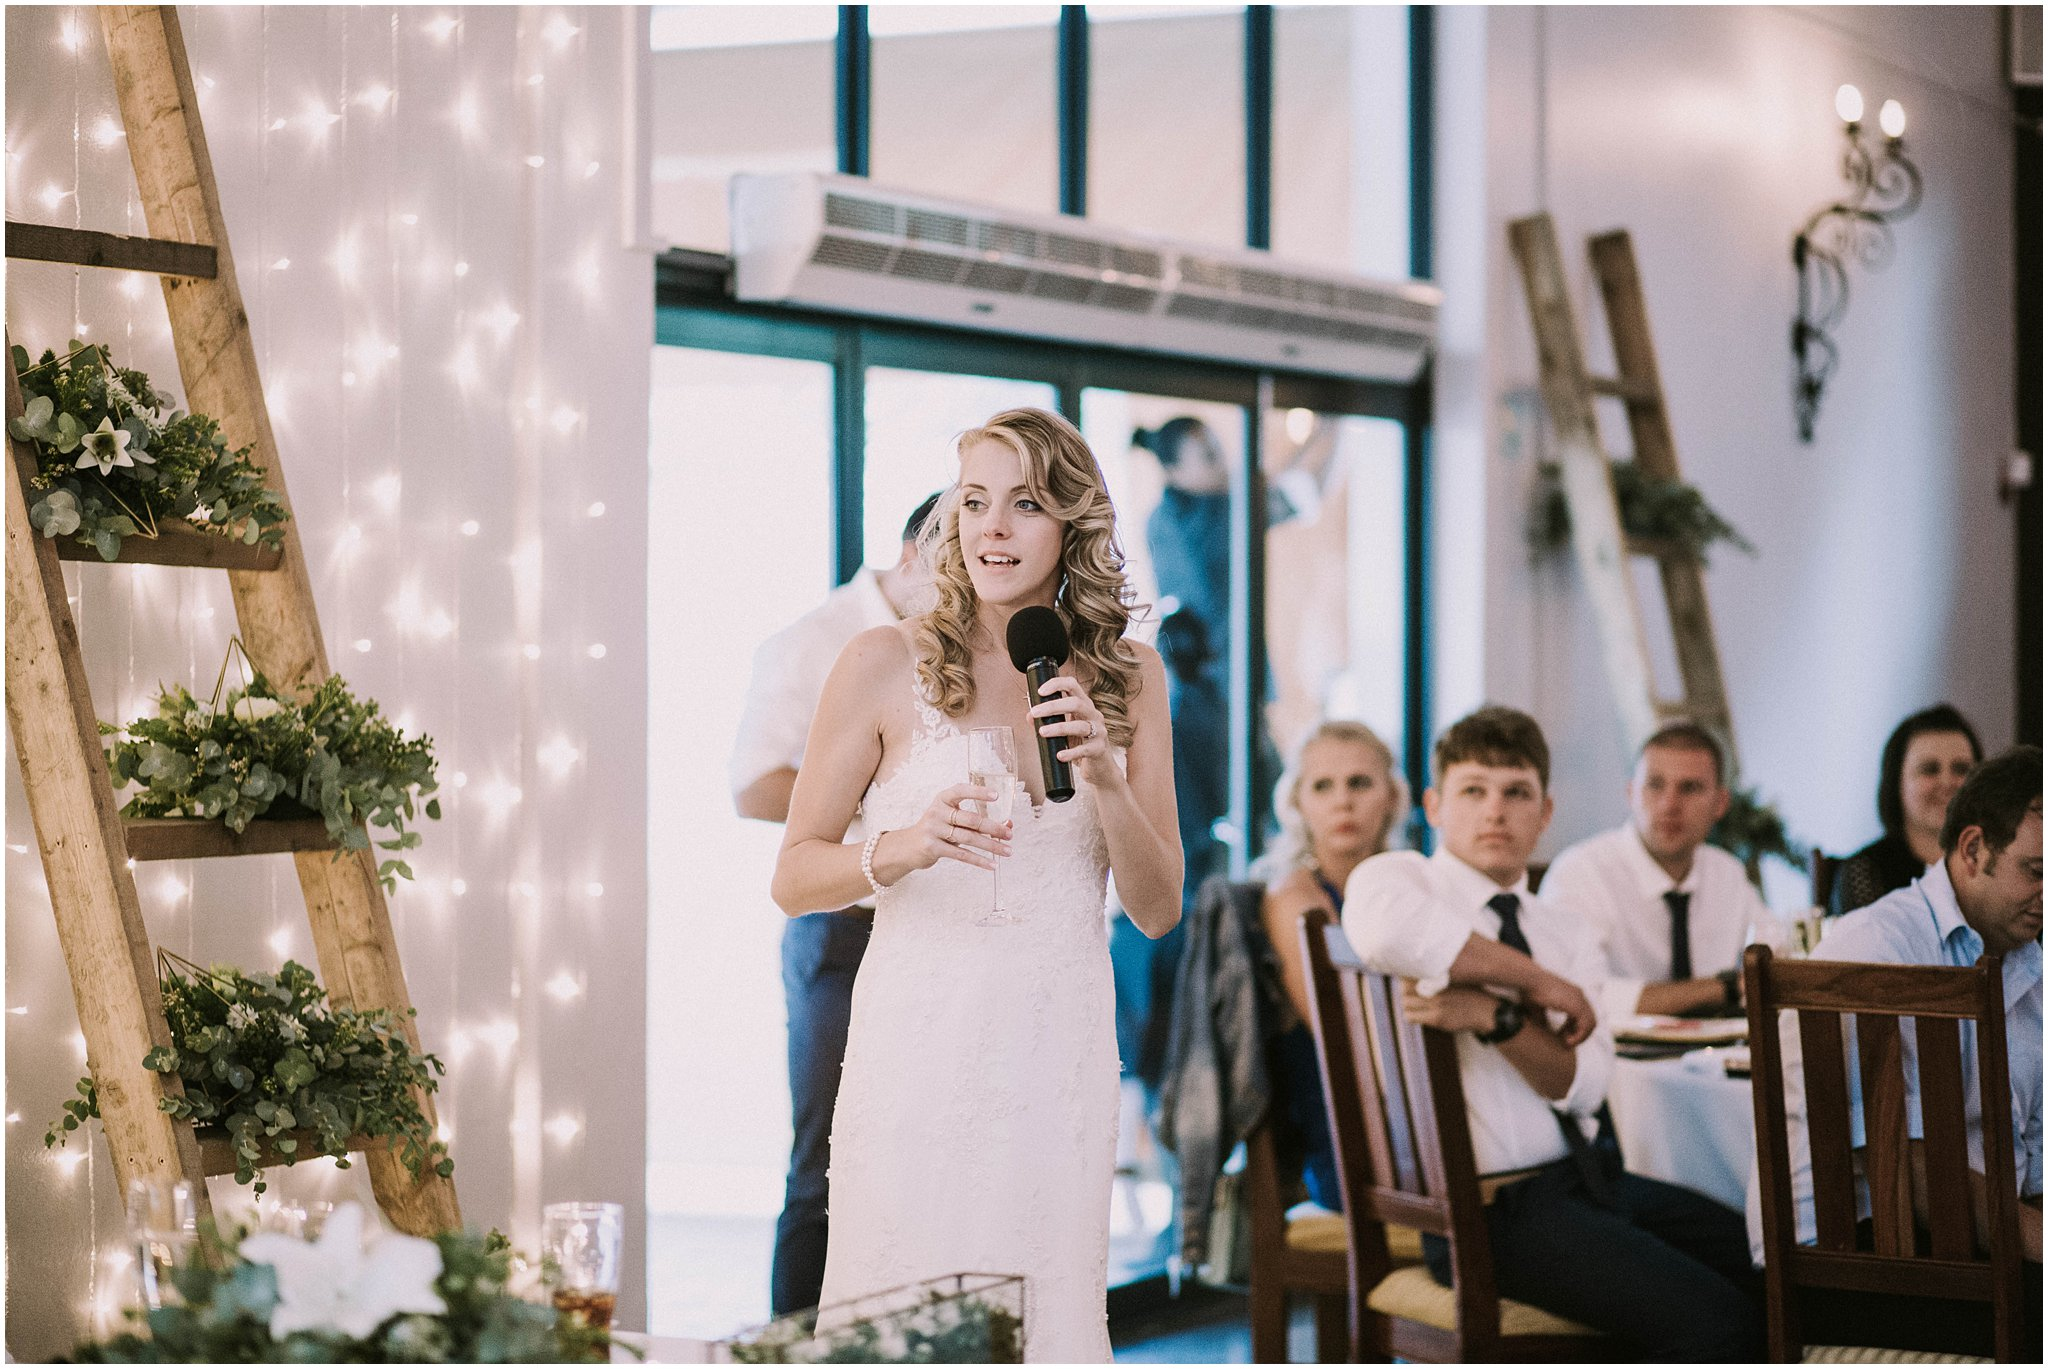 Ronel Kruger Cape Town Wedding and Lifestyle Photographer_2913.jpg